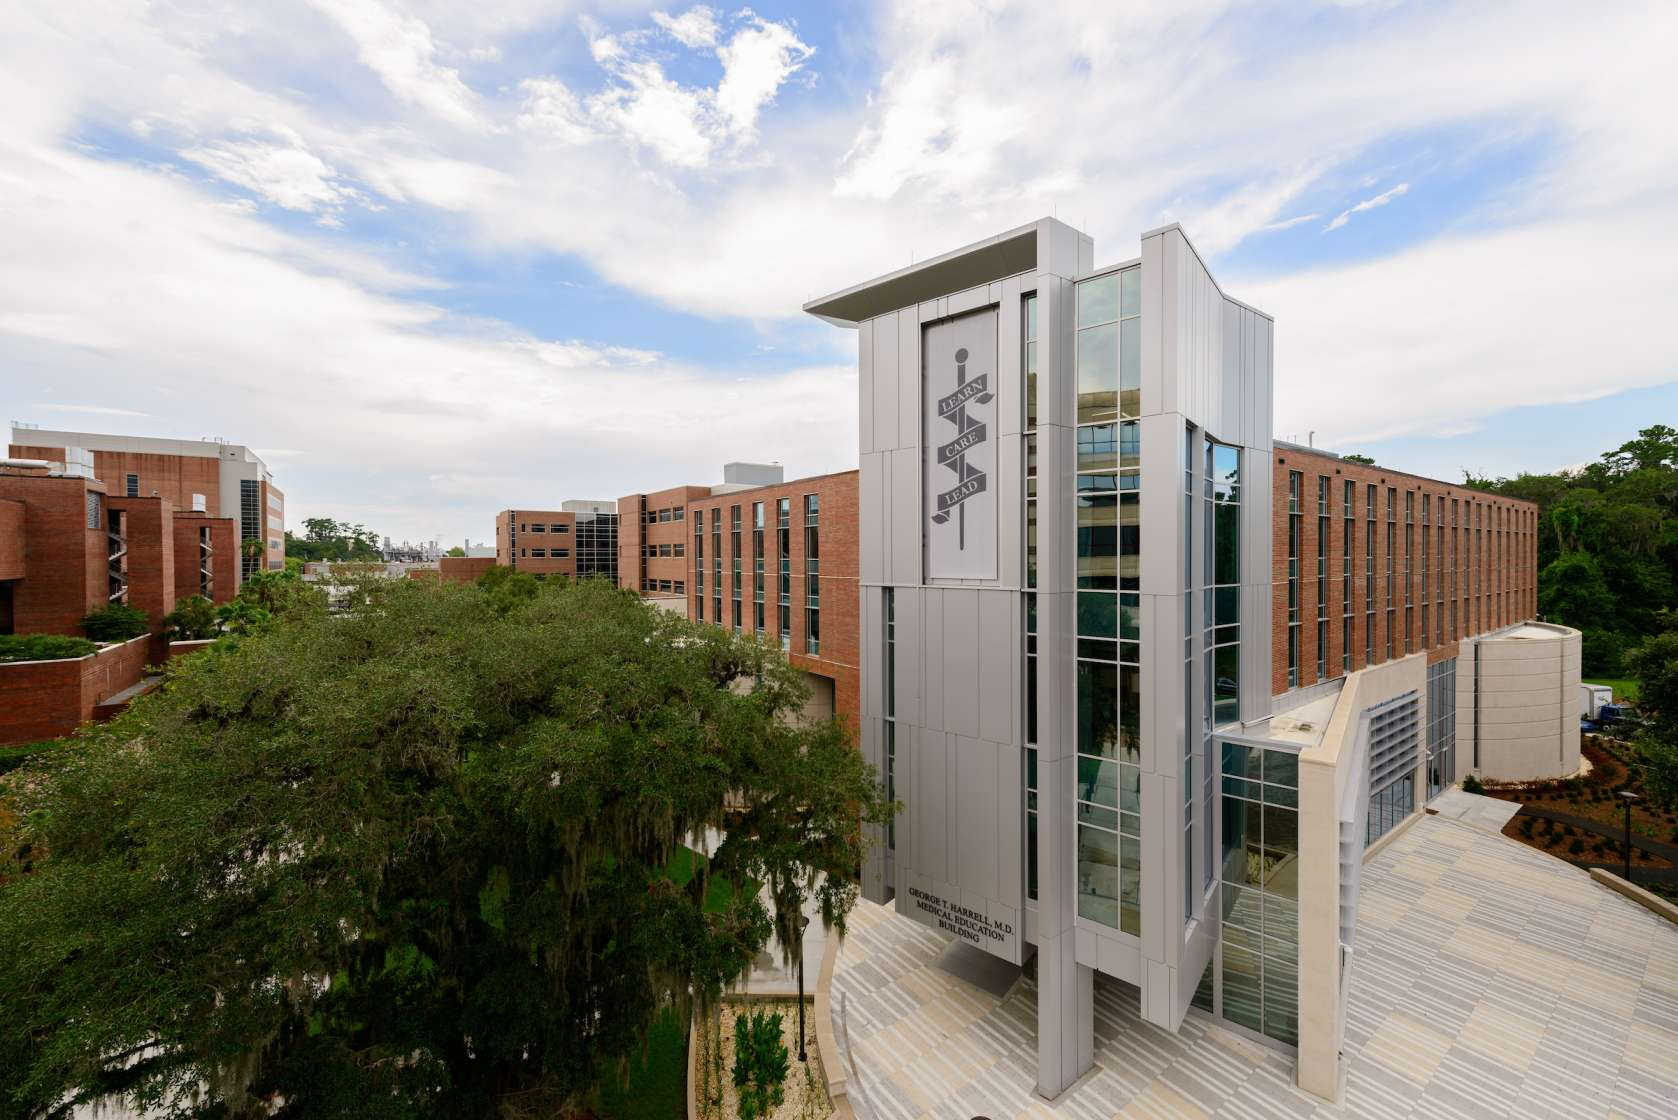 Harrell Medical Education Building UF Monuments and Buildings